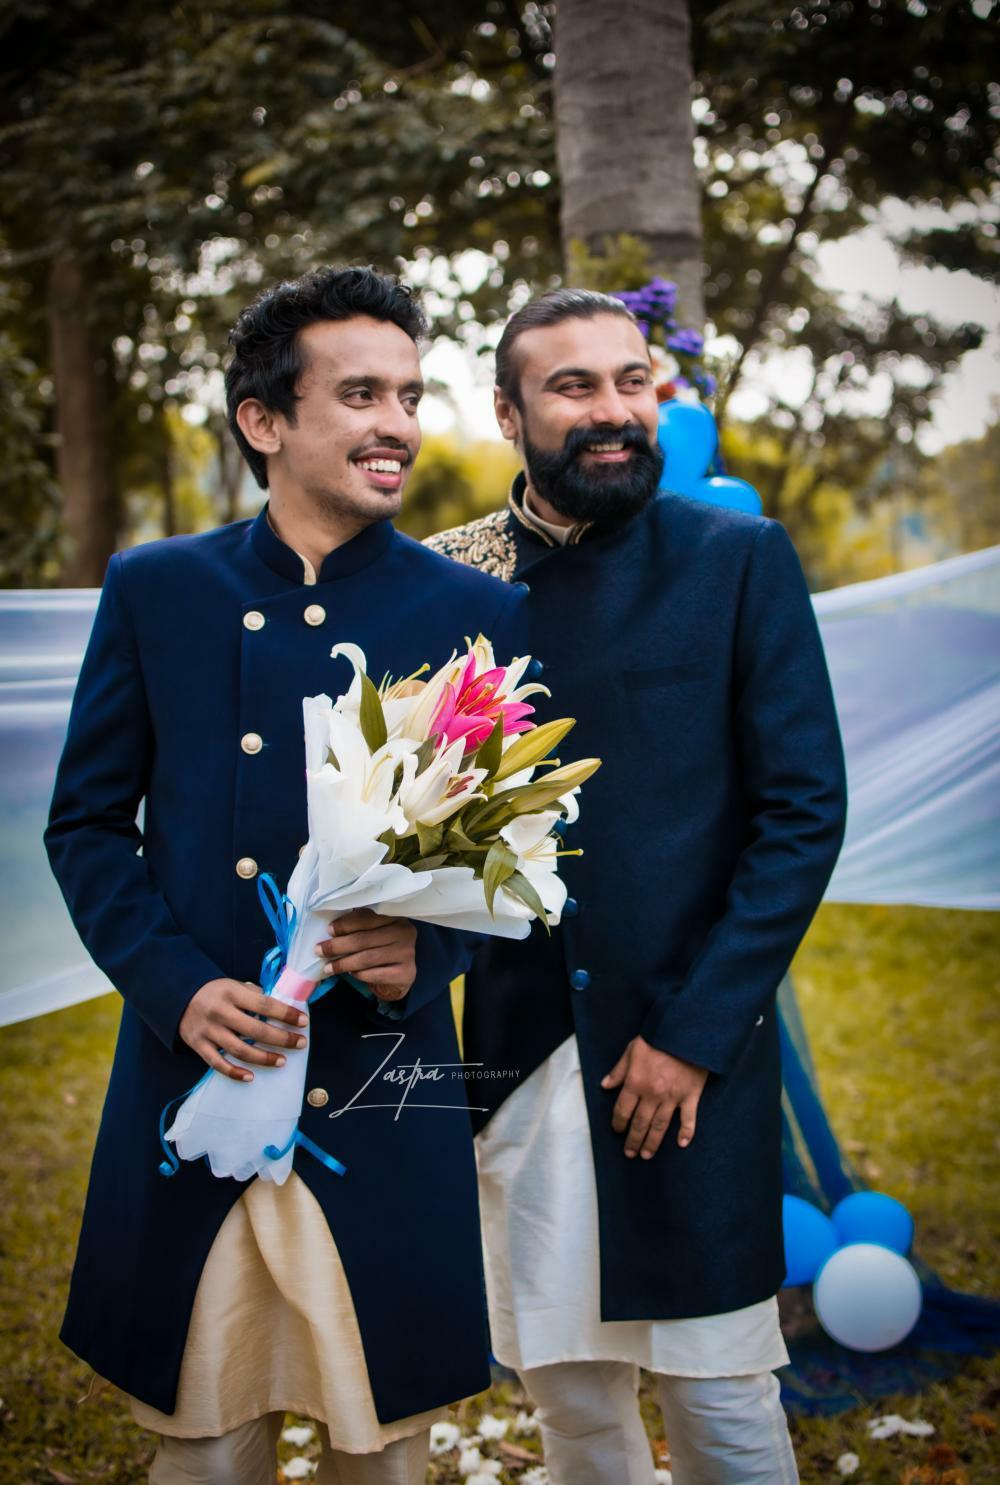 Queer Wedding Alert!: Nived And Rahim